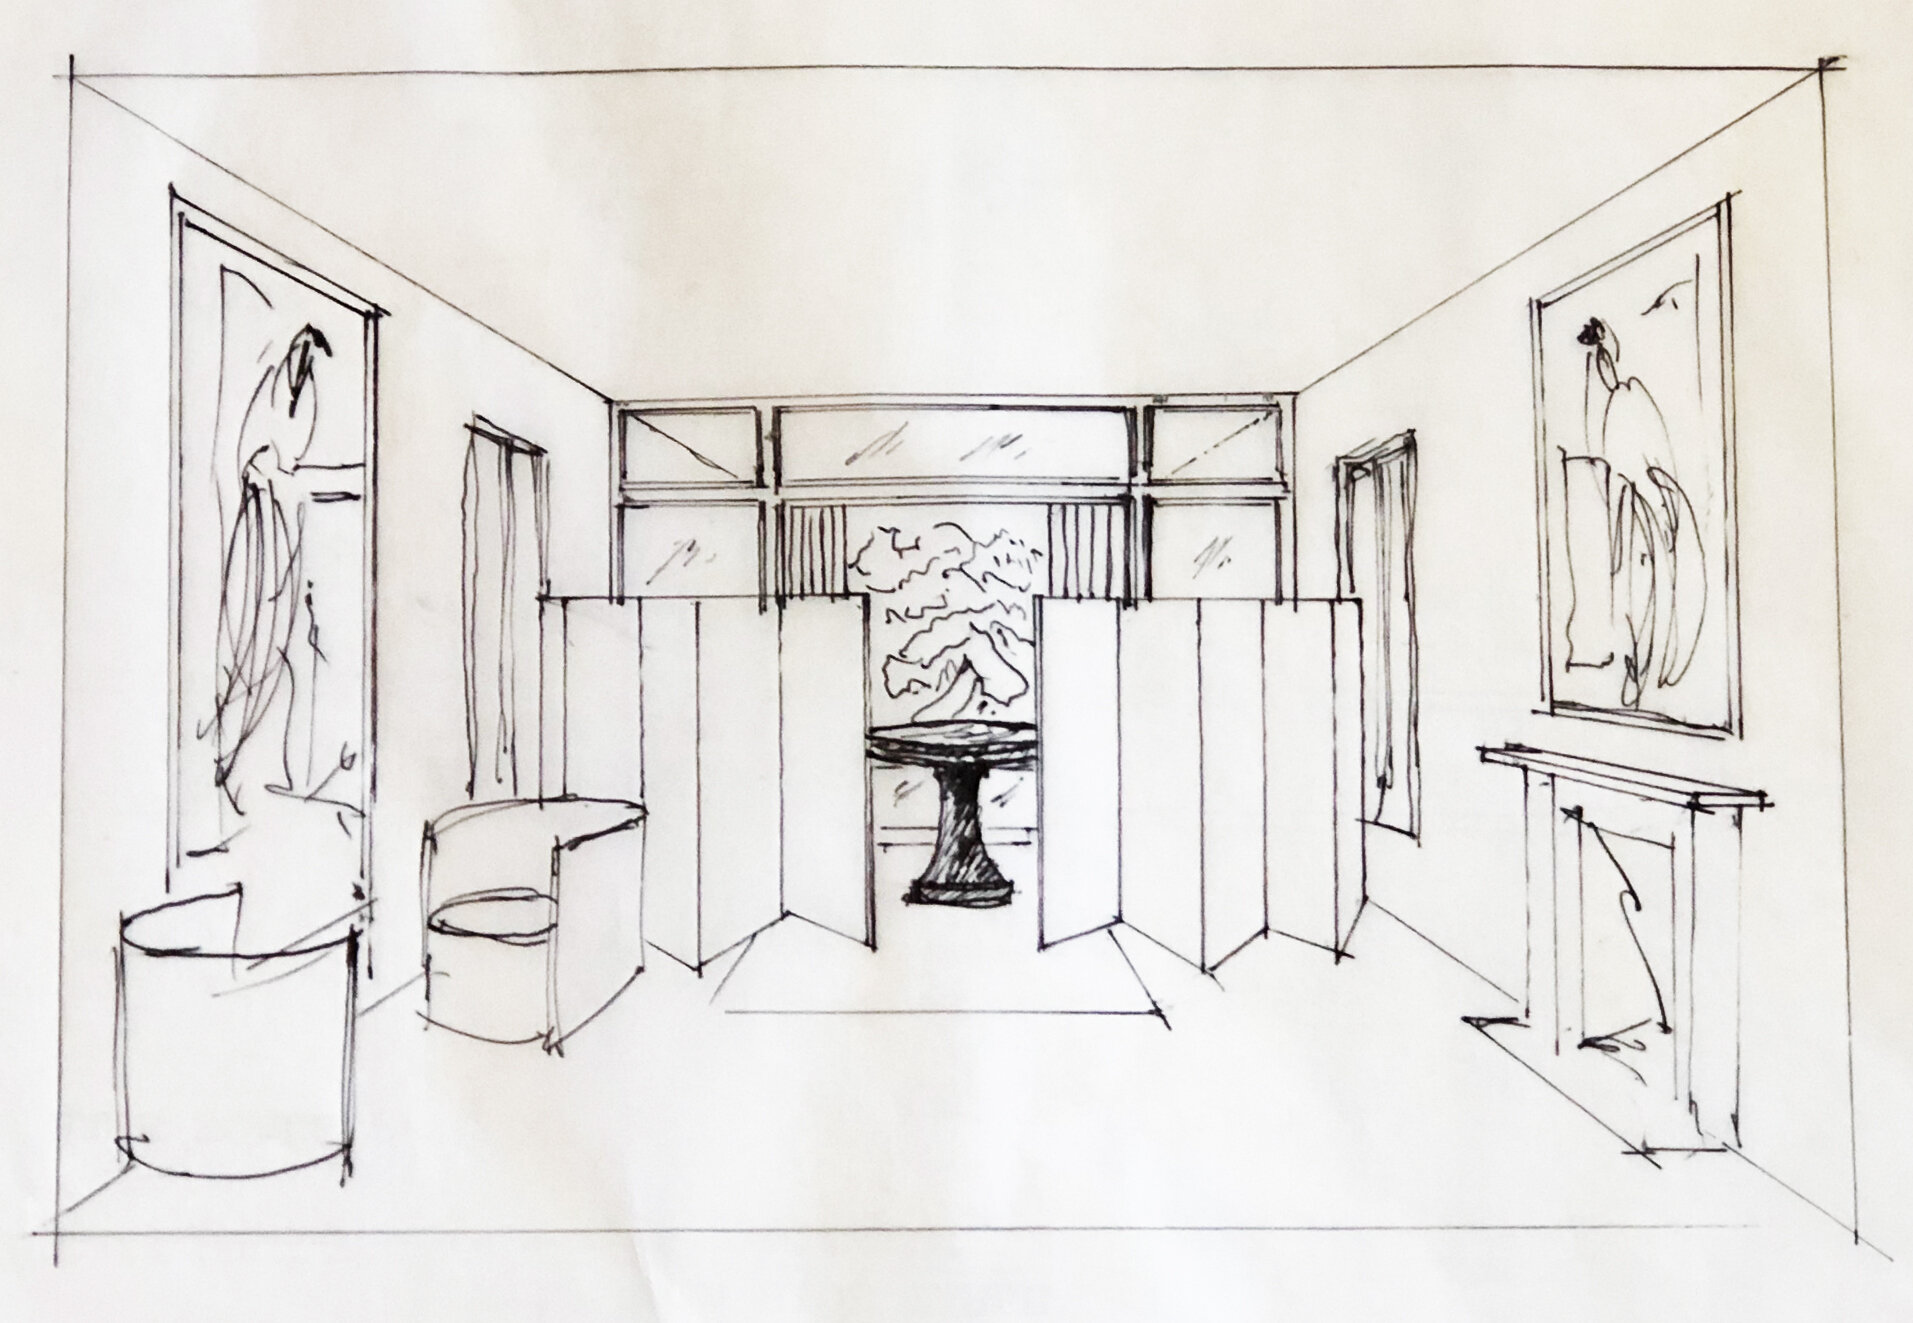 Original room sketch courtesy of Felix Pfeifle from Office of Cultural Design.